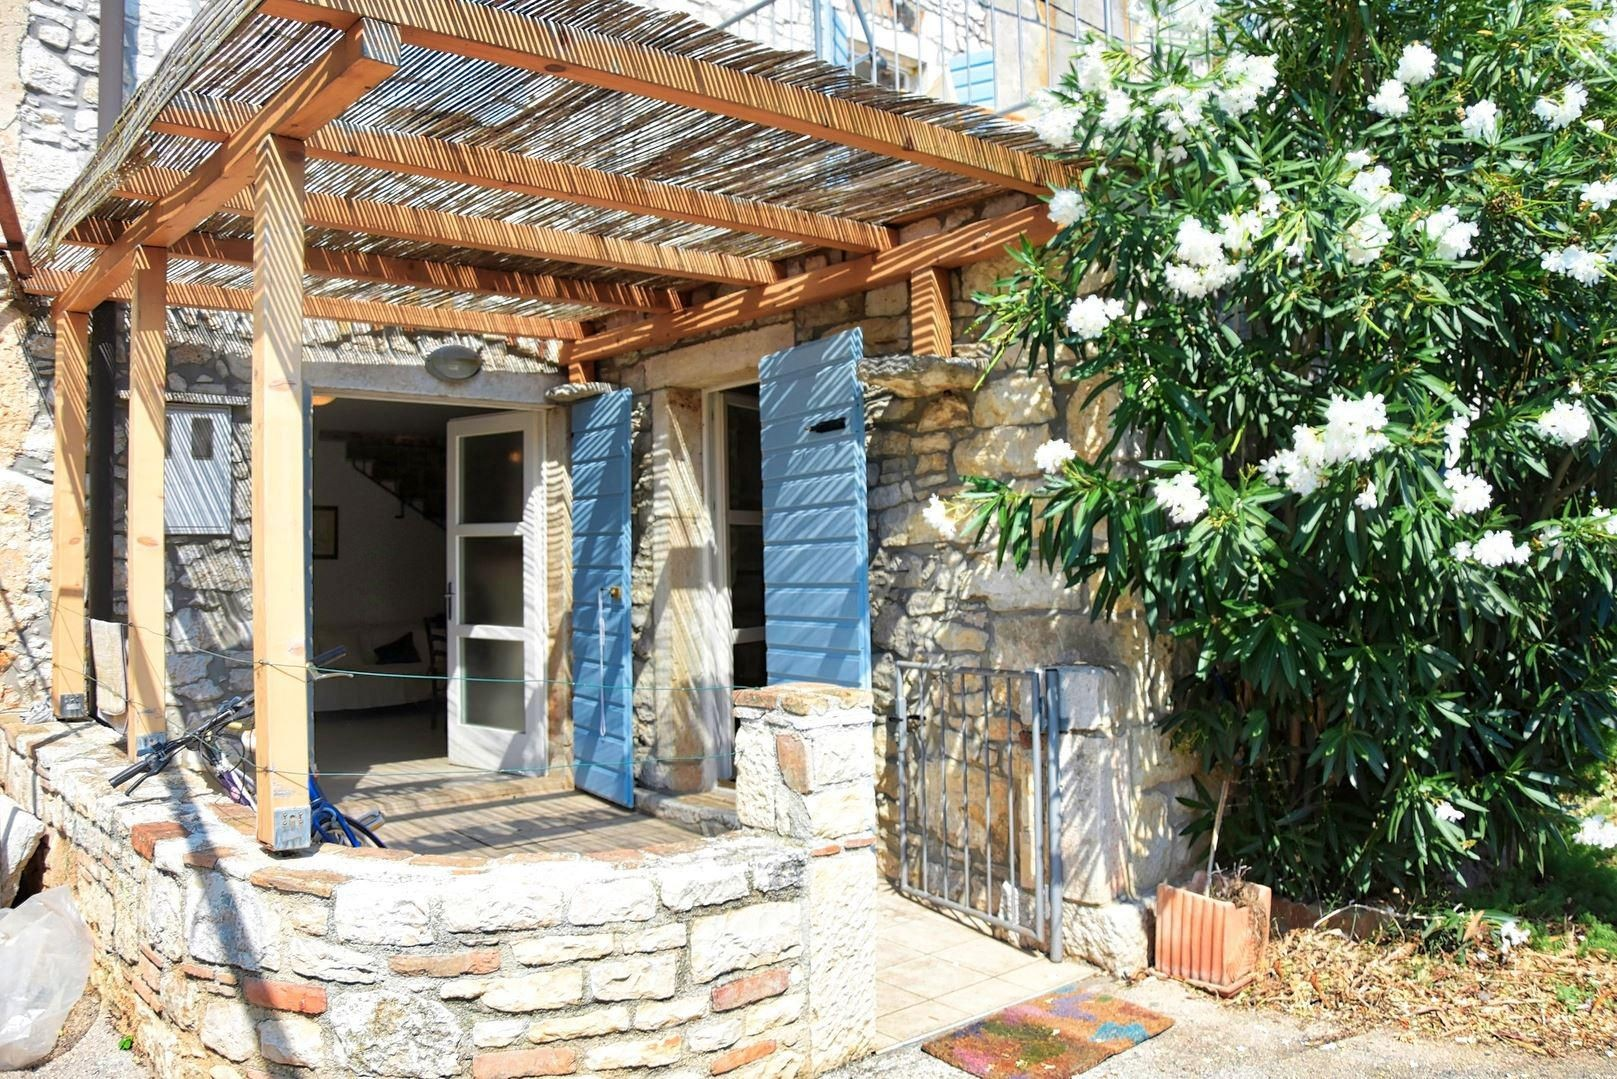 Authentically renovated stone house, only few miles away from Porec